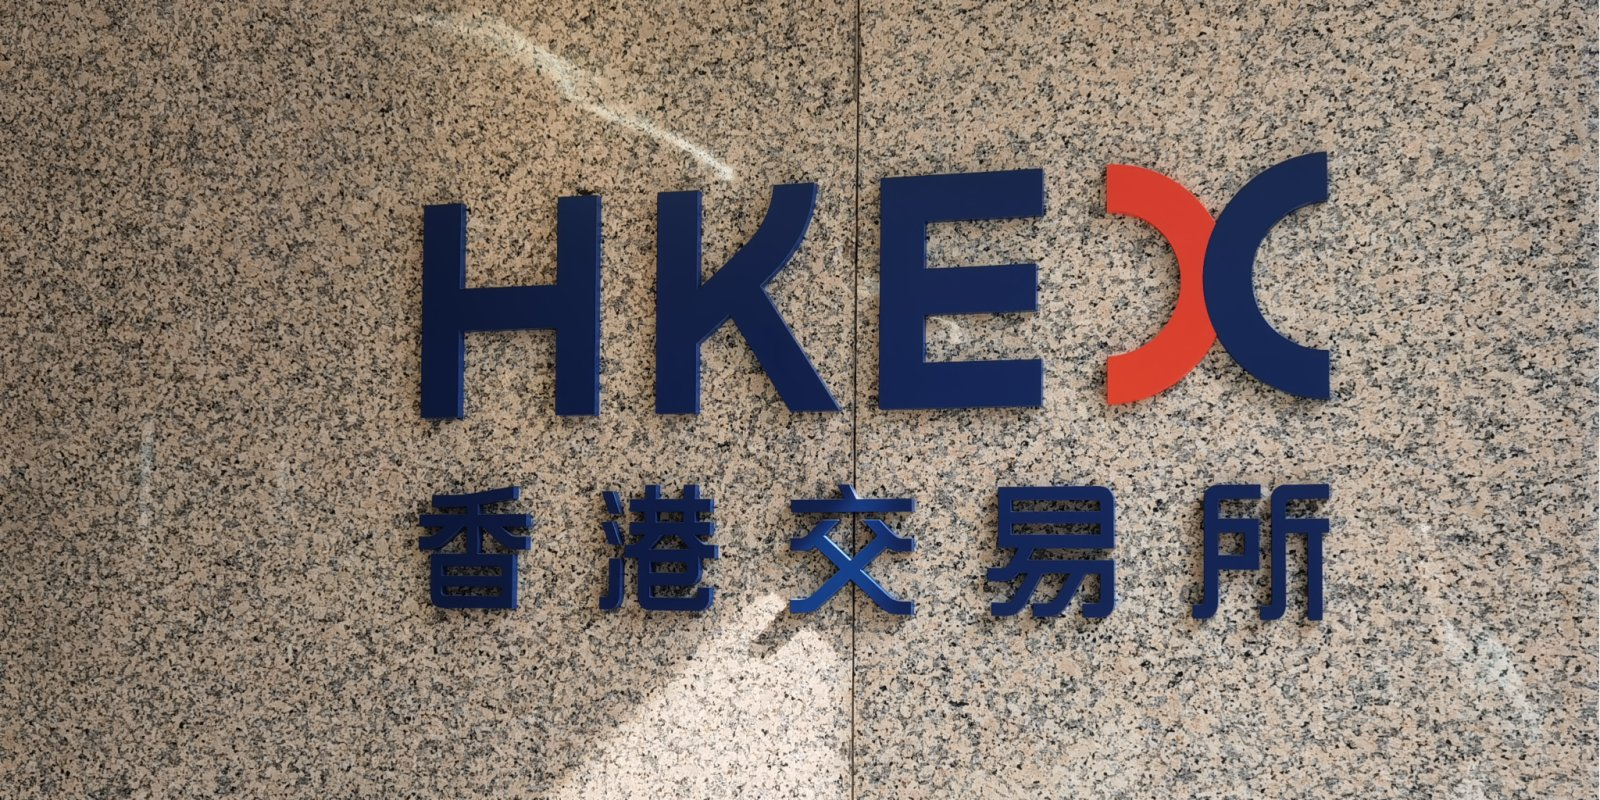 HKEX proposes easing listing rules to lure more overseas firms